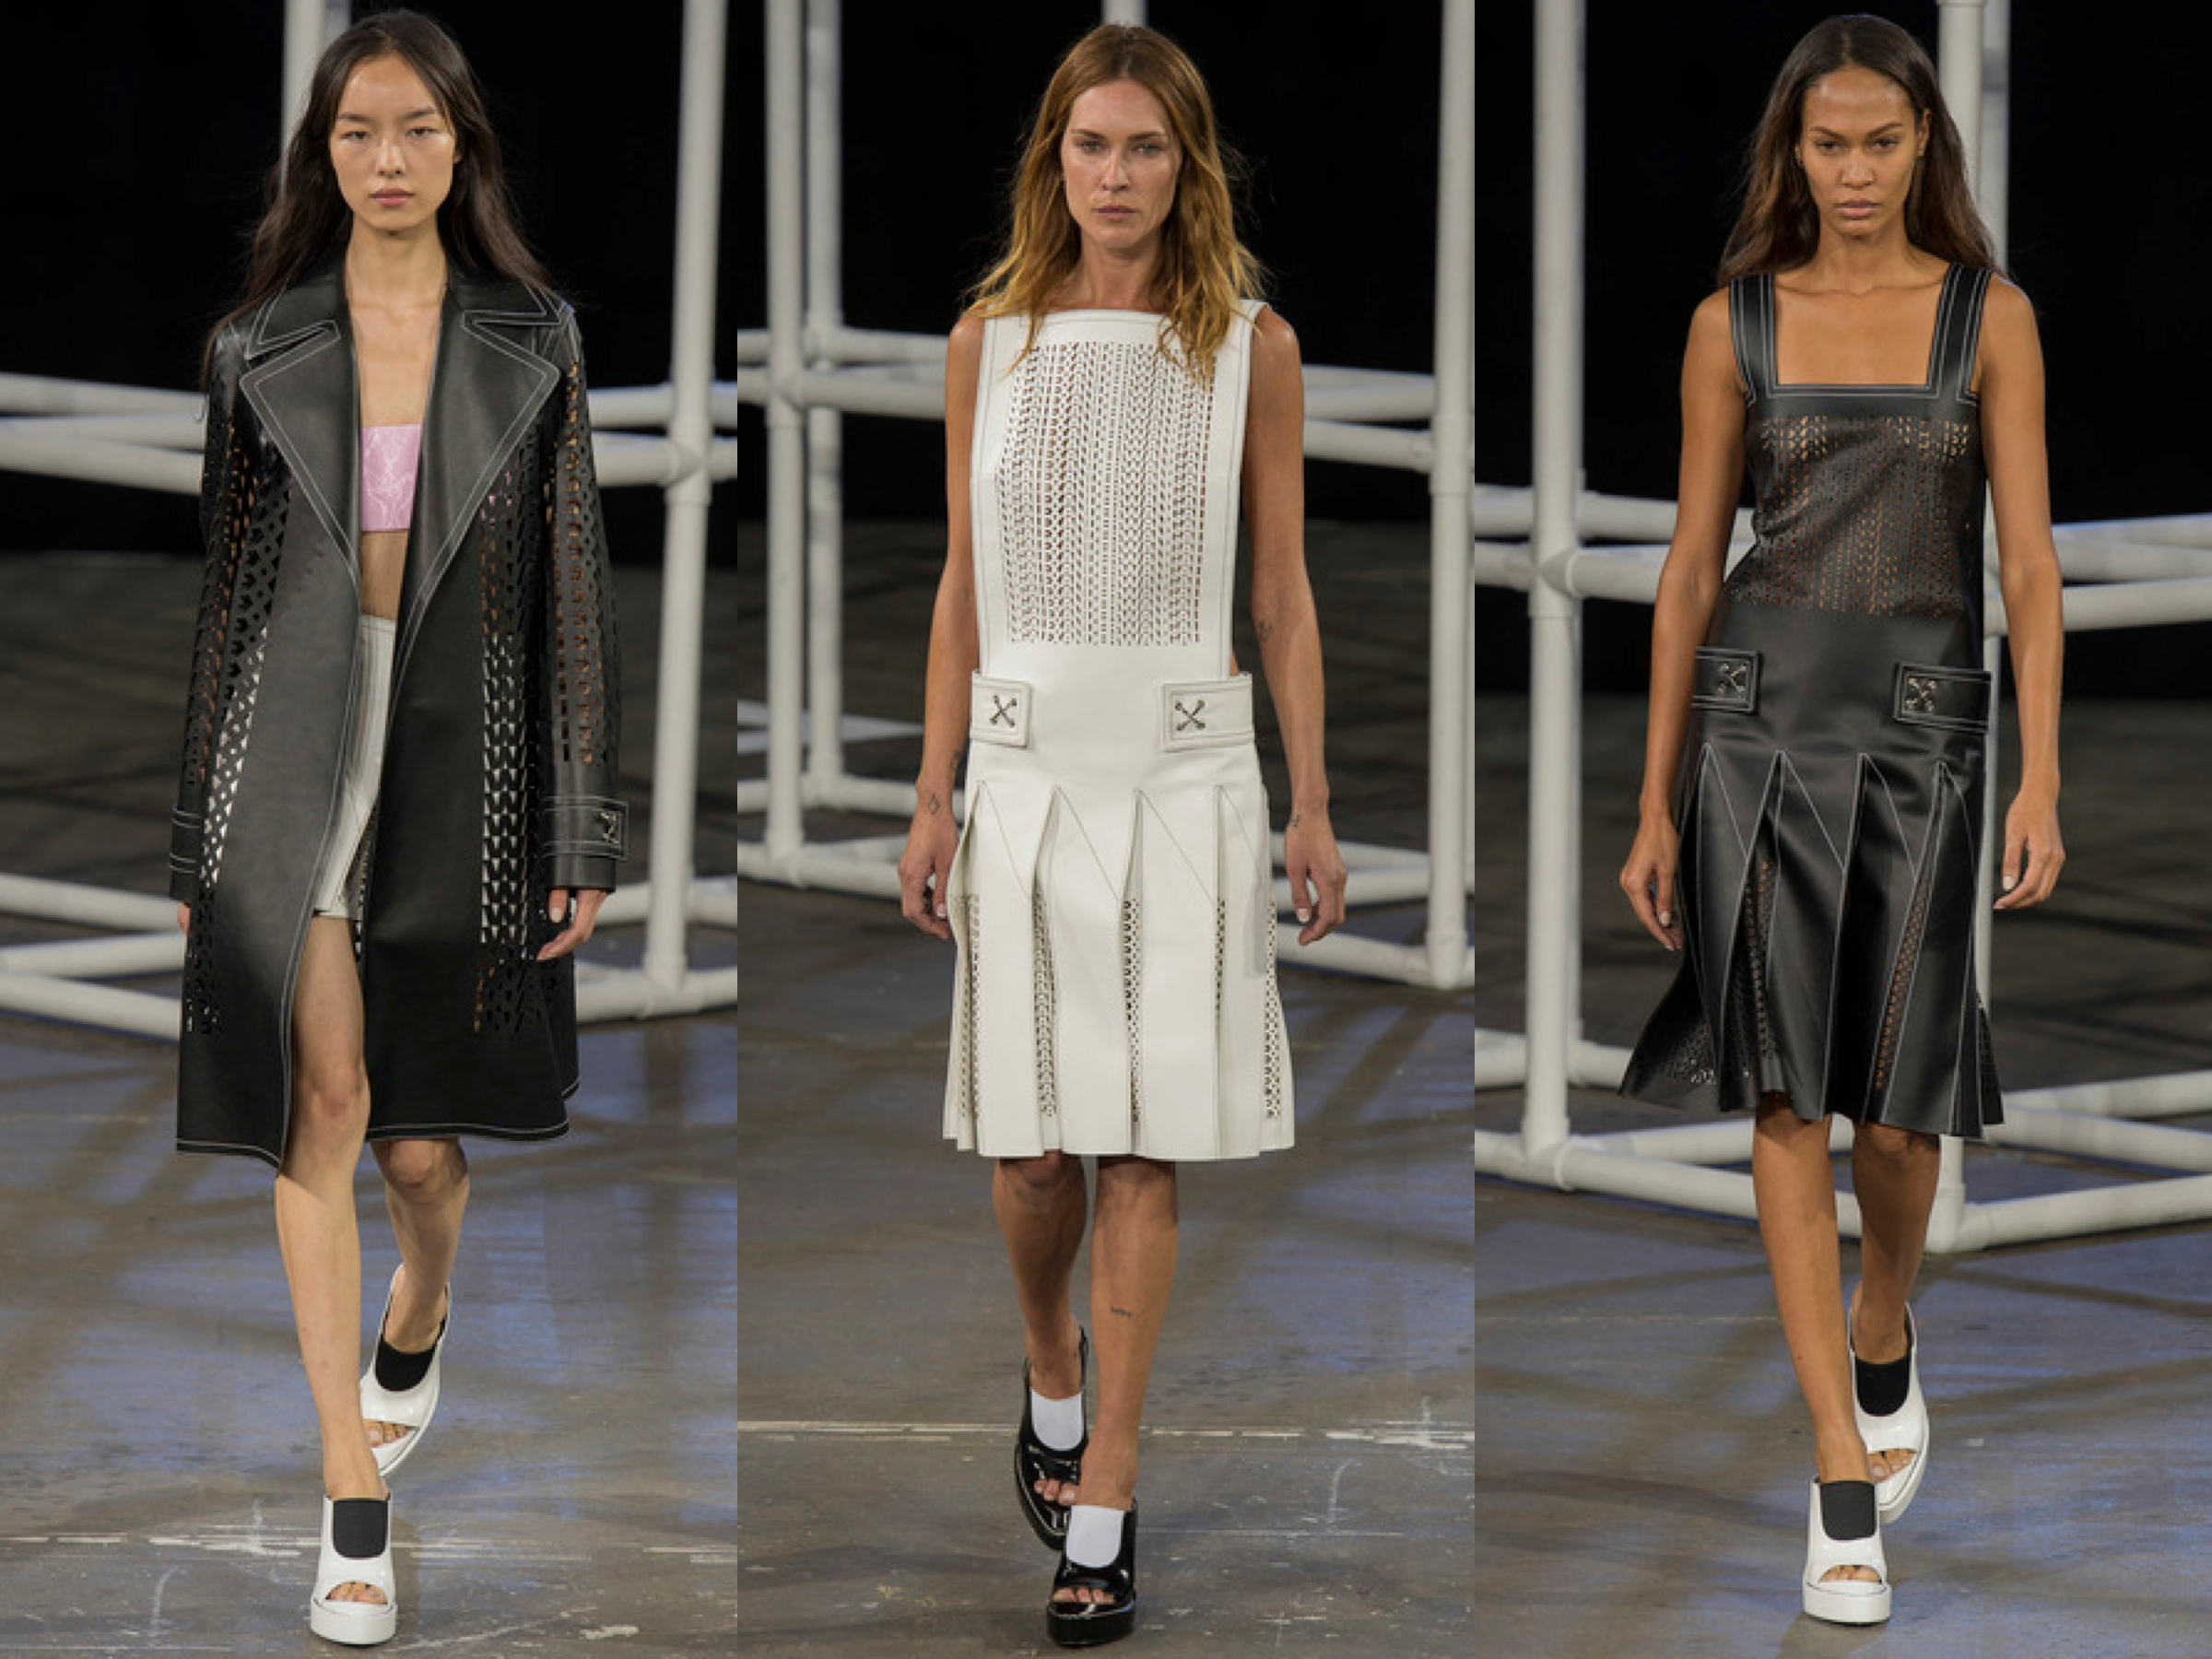 Alexander Wang spring 2014 collage 5